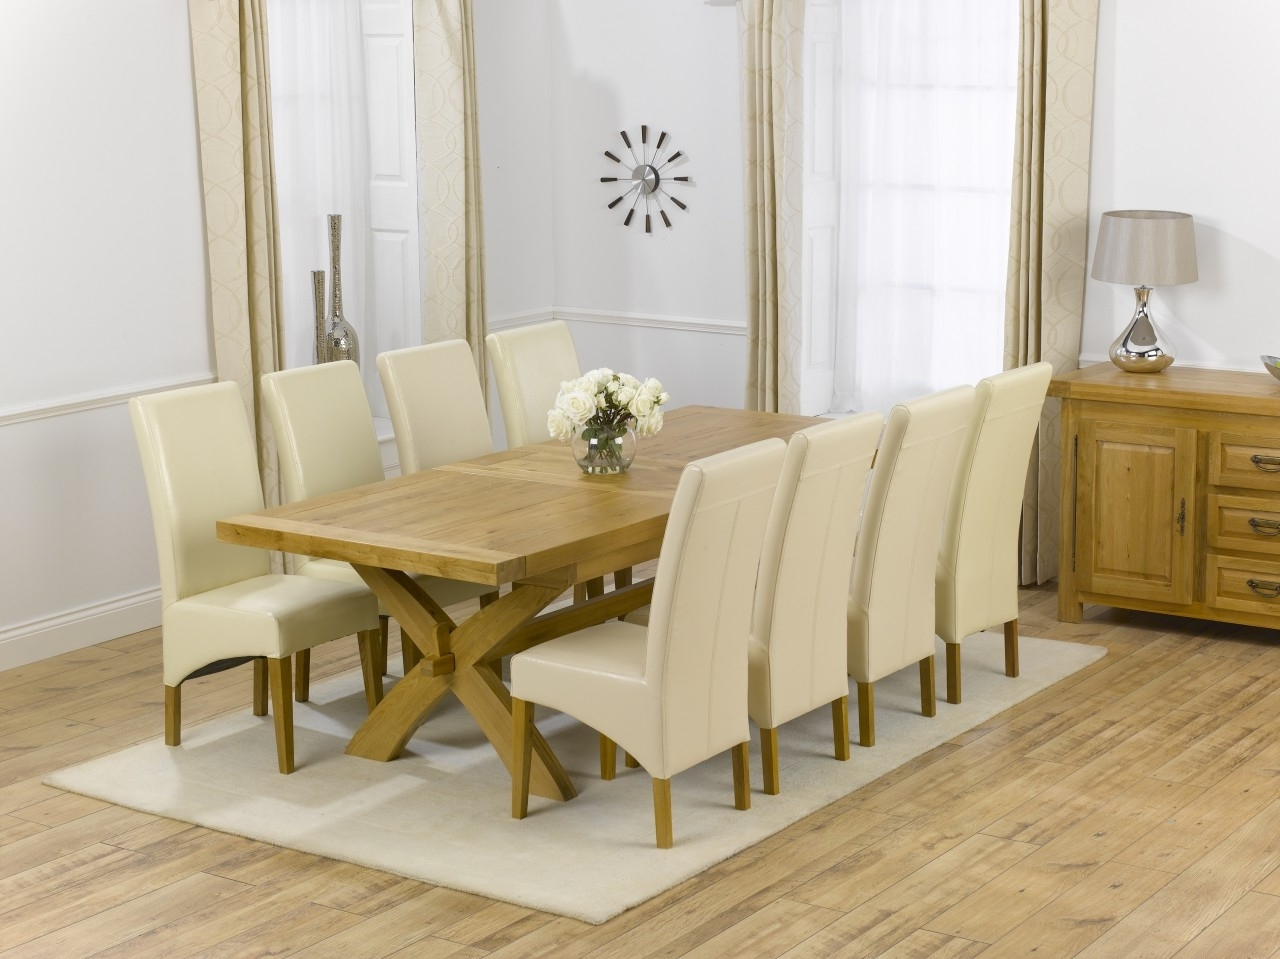 Roma Dining Tables And Chairs Sets Regarding Most Recently Released Canterbury Solid Oak Dining Table + 8 Roma Dining Chair Dining Set (View 19 of 25)